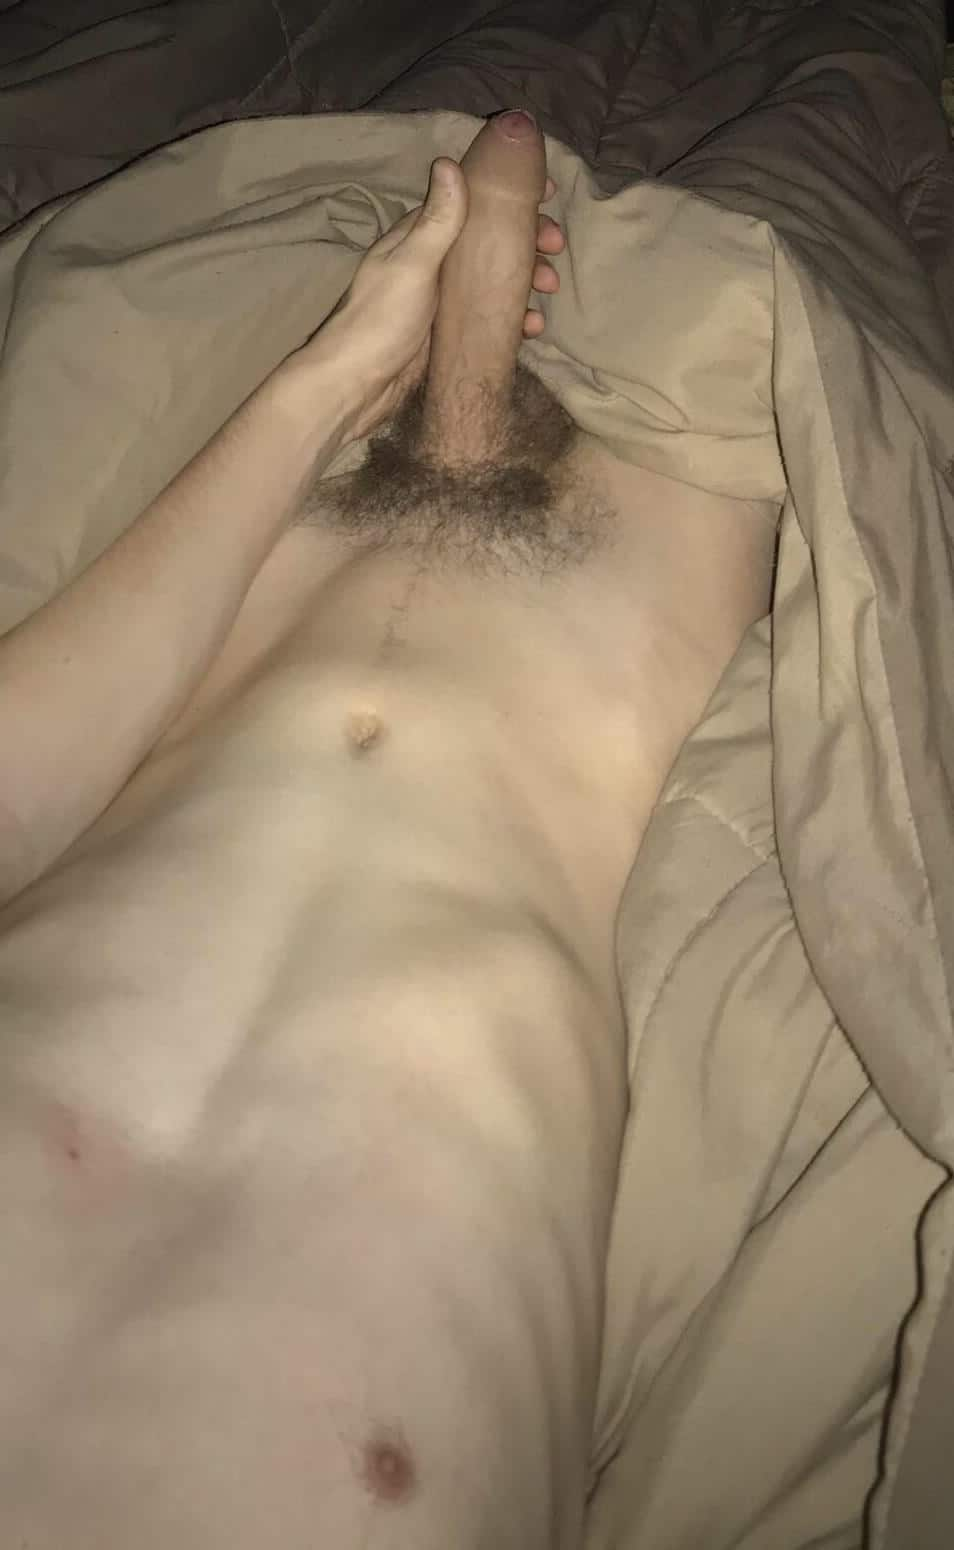 Hung nude boy in bed